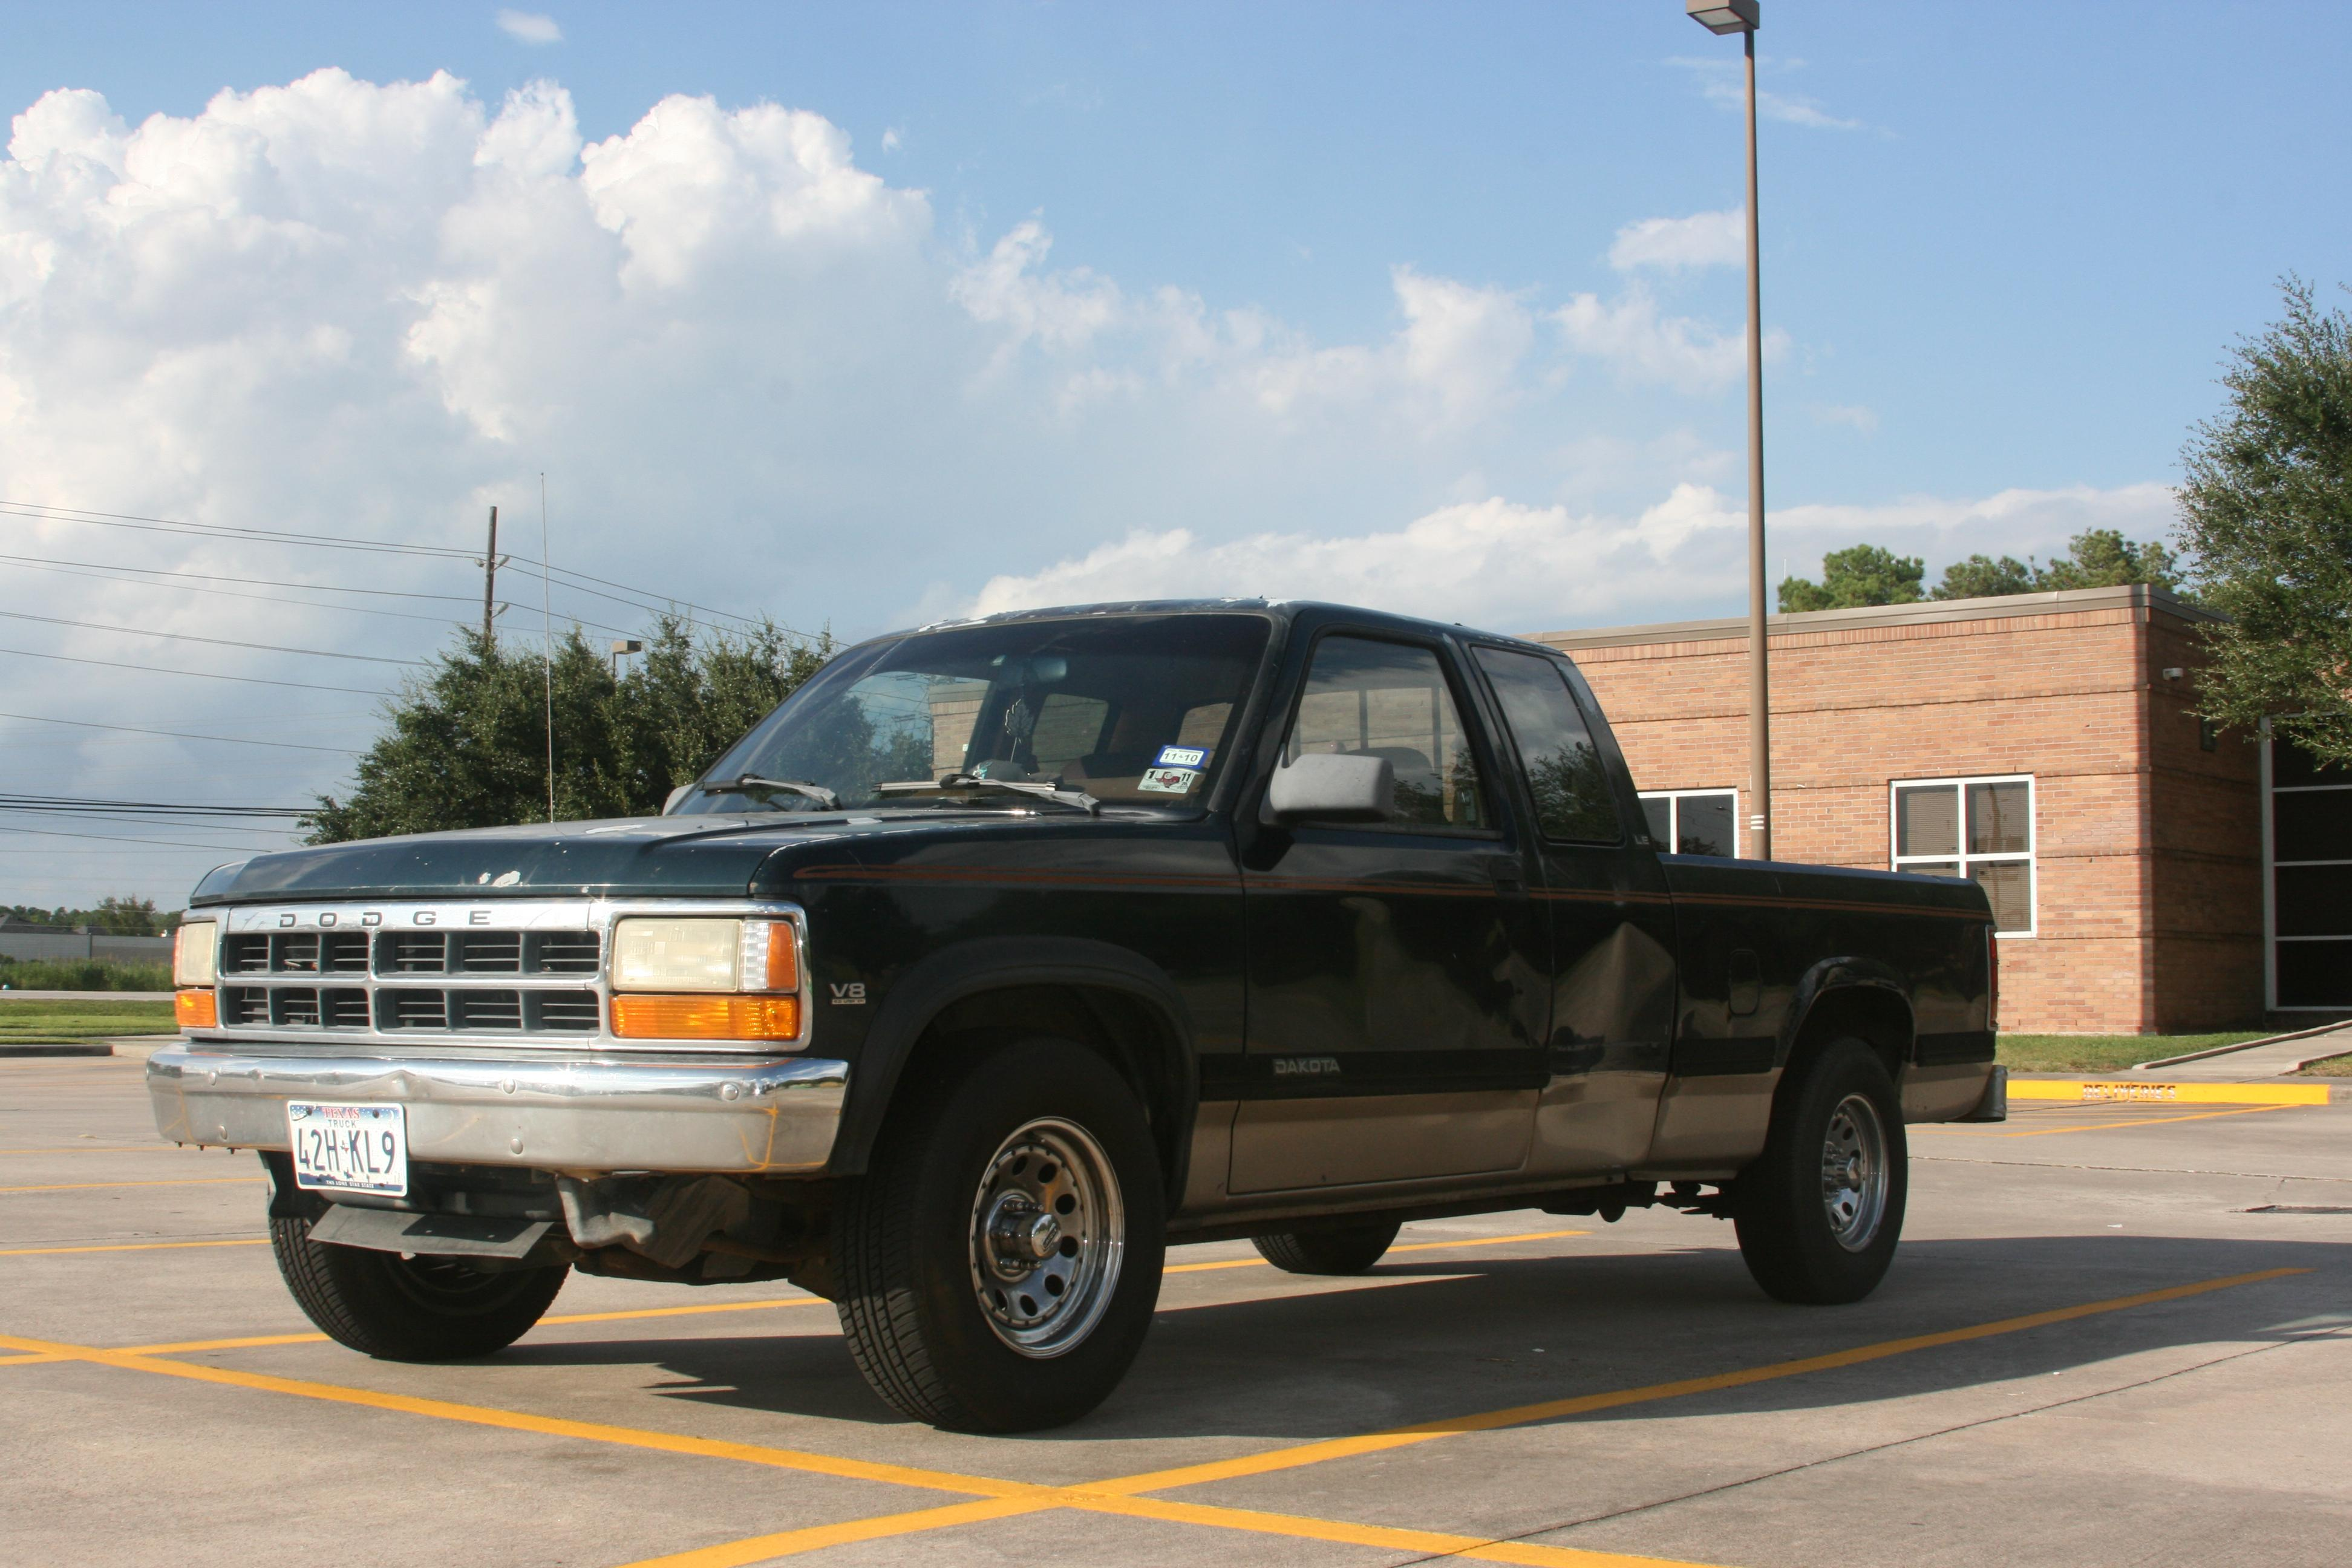 92dakotaV8 1992 Dodge Dakota Extended Cab 14723833